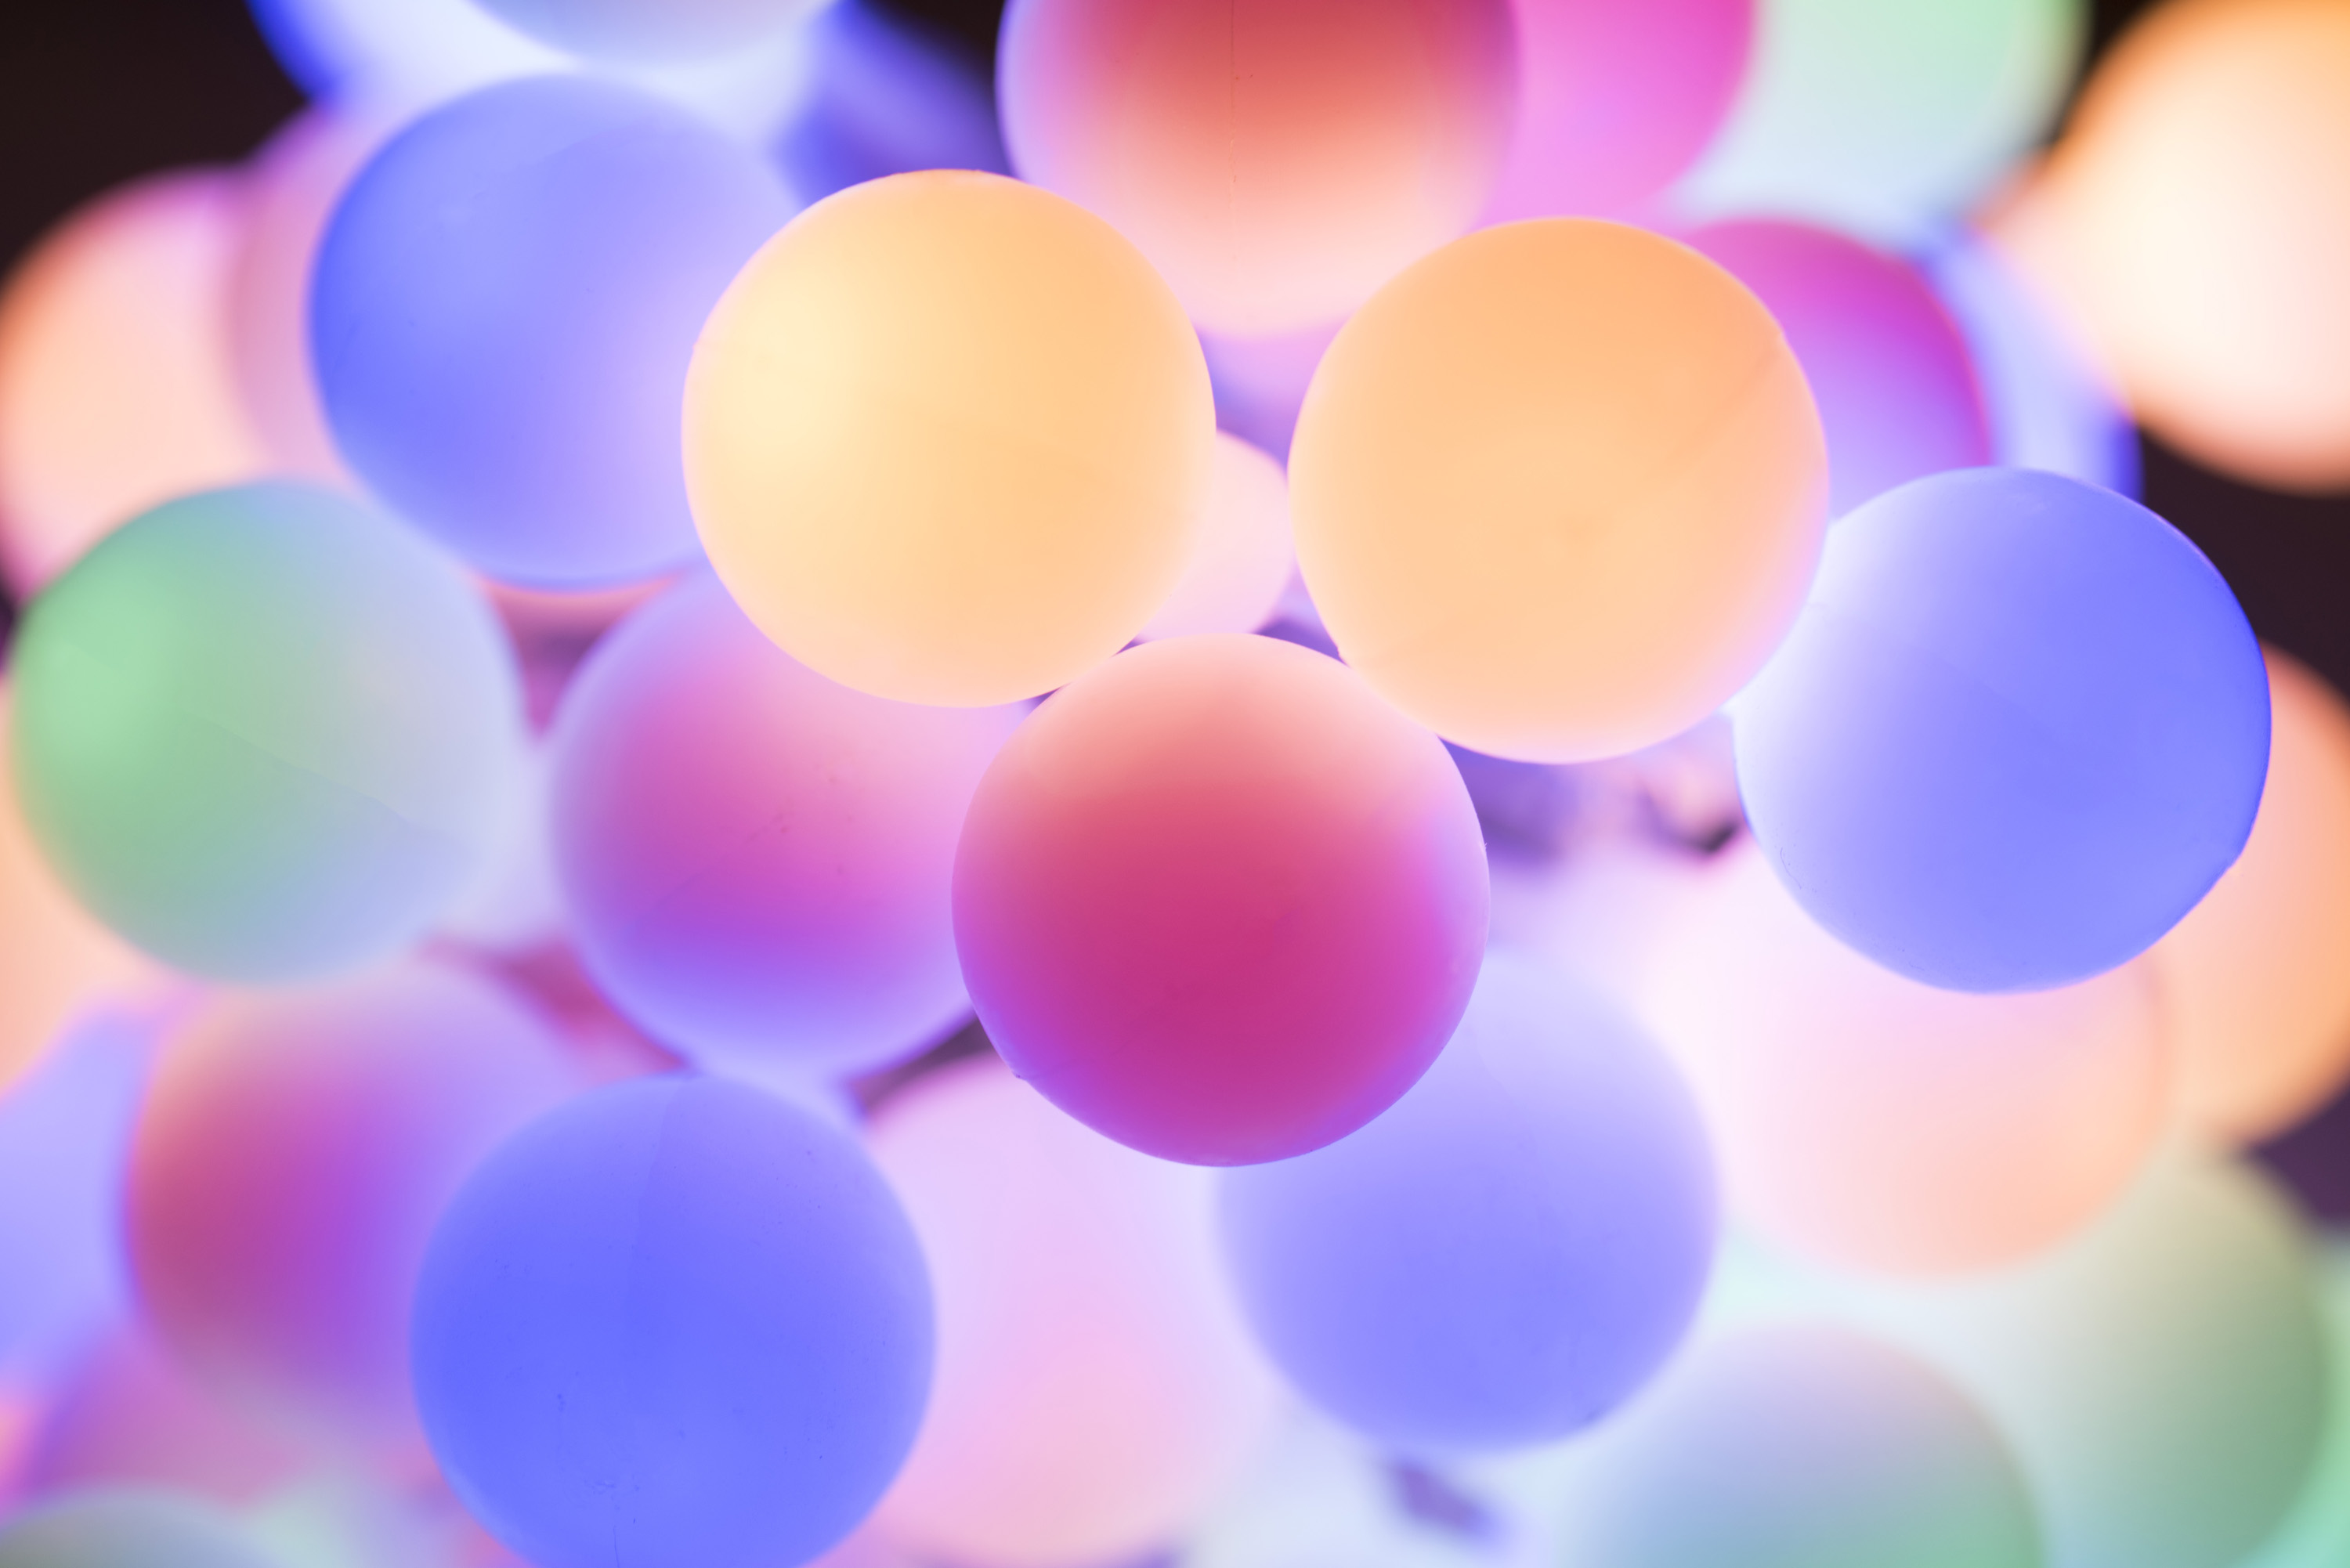 Christmas background of softly glowing colorful round lights in pastel hues in a full frame view